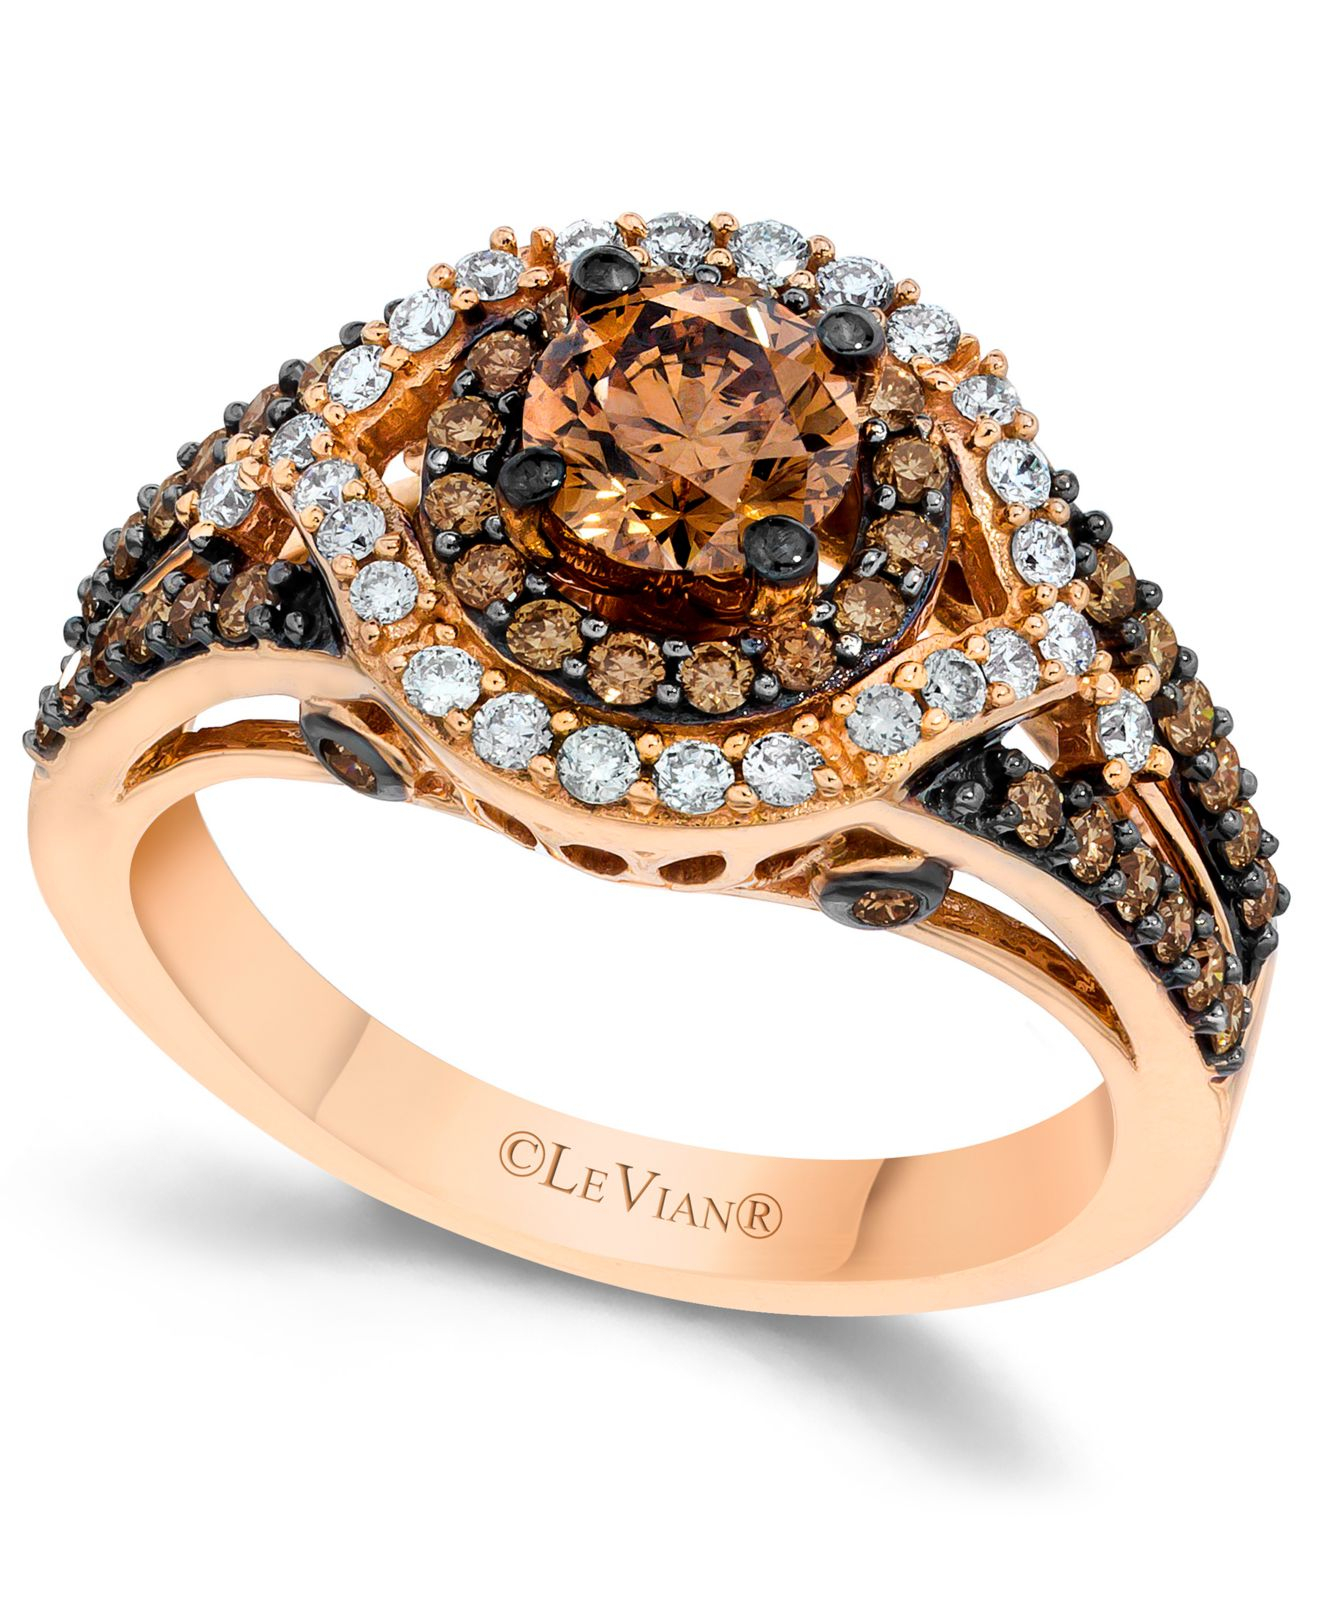 Le vian Chocolate And White Diamond Engagement Ring In 14k Rose